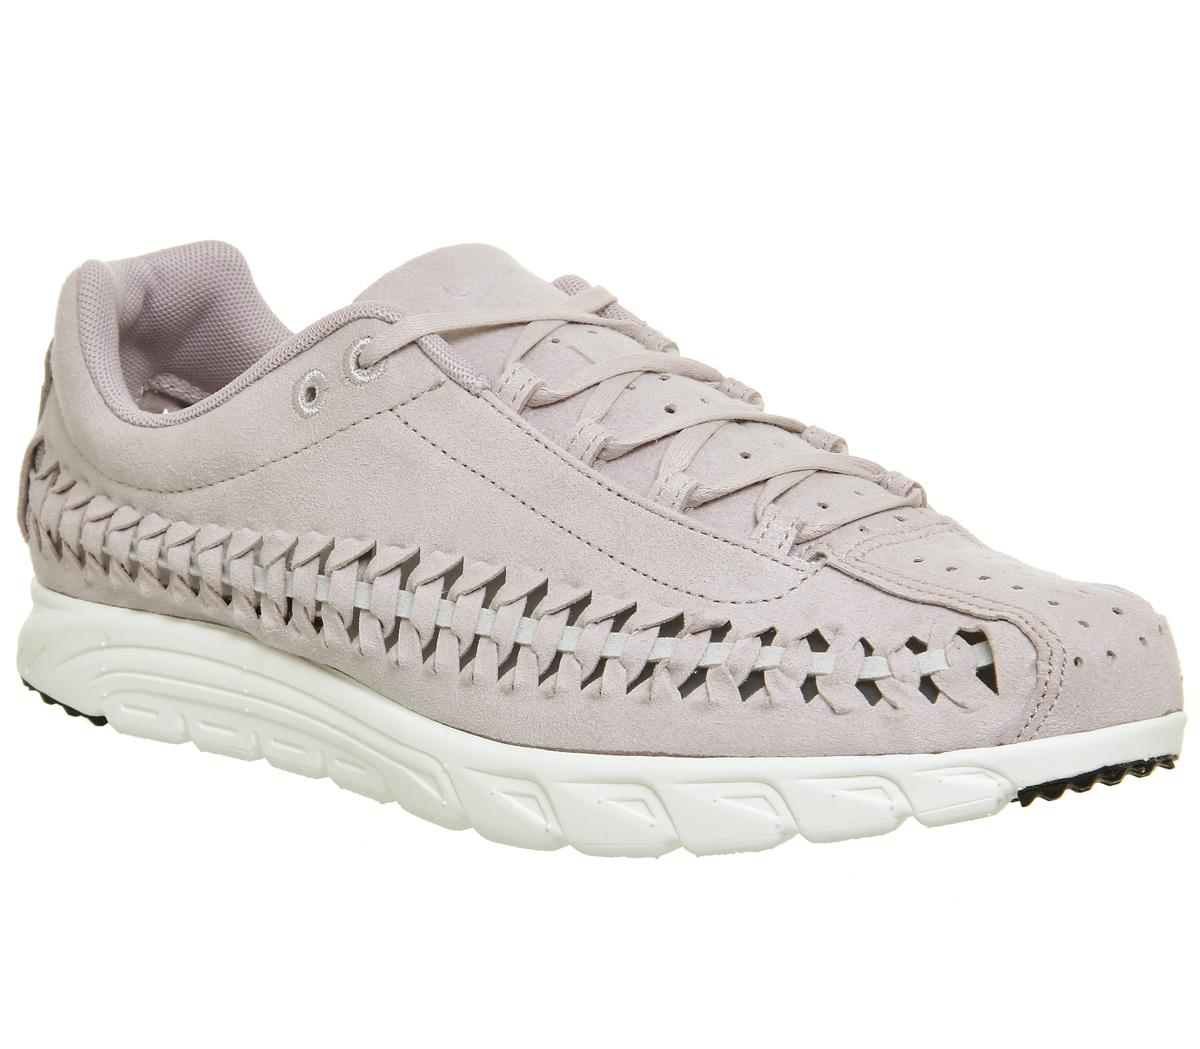 3e602eb718b Nike Mayfly Woven Trainers Particle Rose - Hers trainers